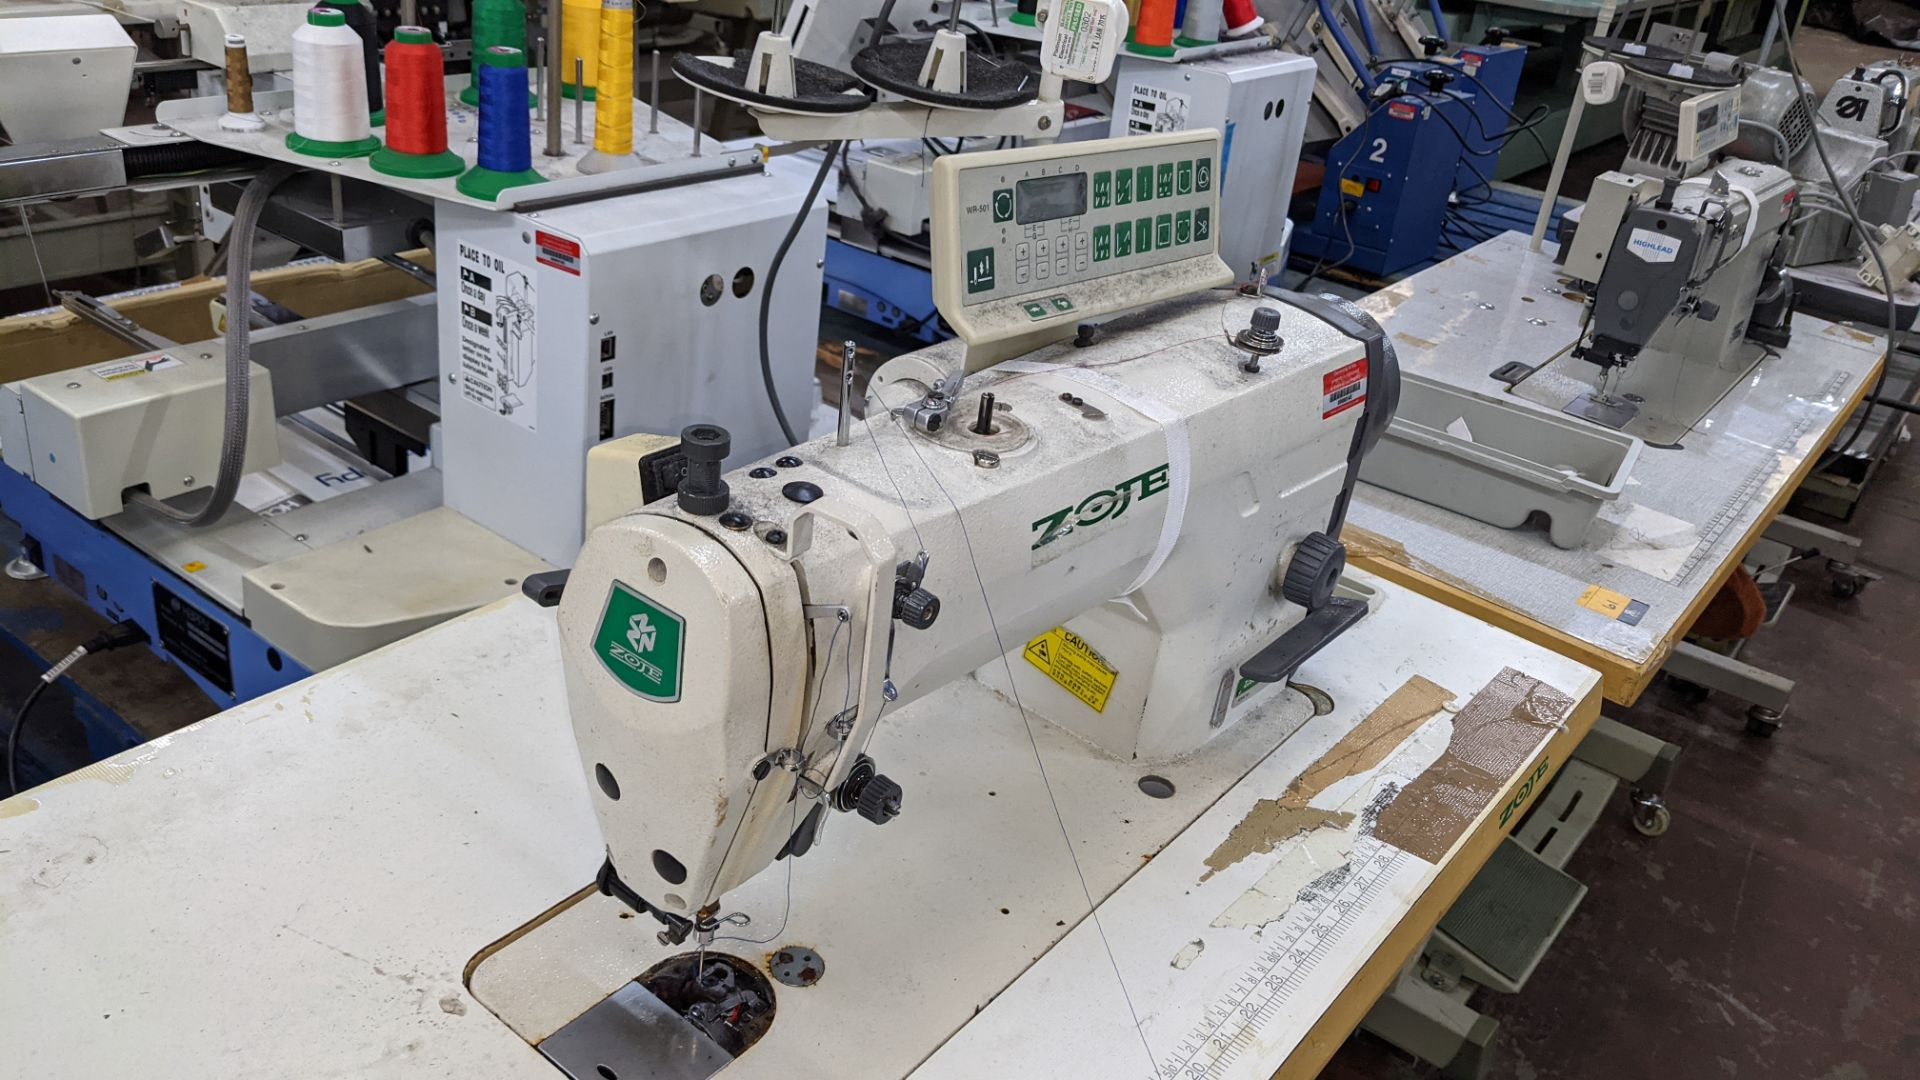 Zoje model ZJ9800A-D3B/PF sewing machine with WR-501 controller - Image 9 of 16